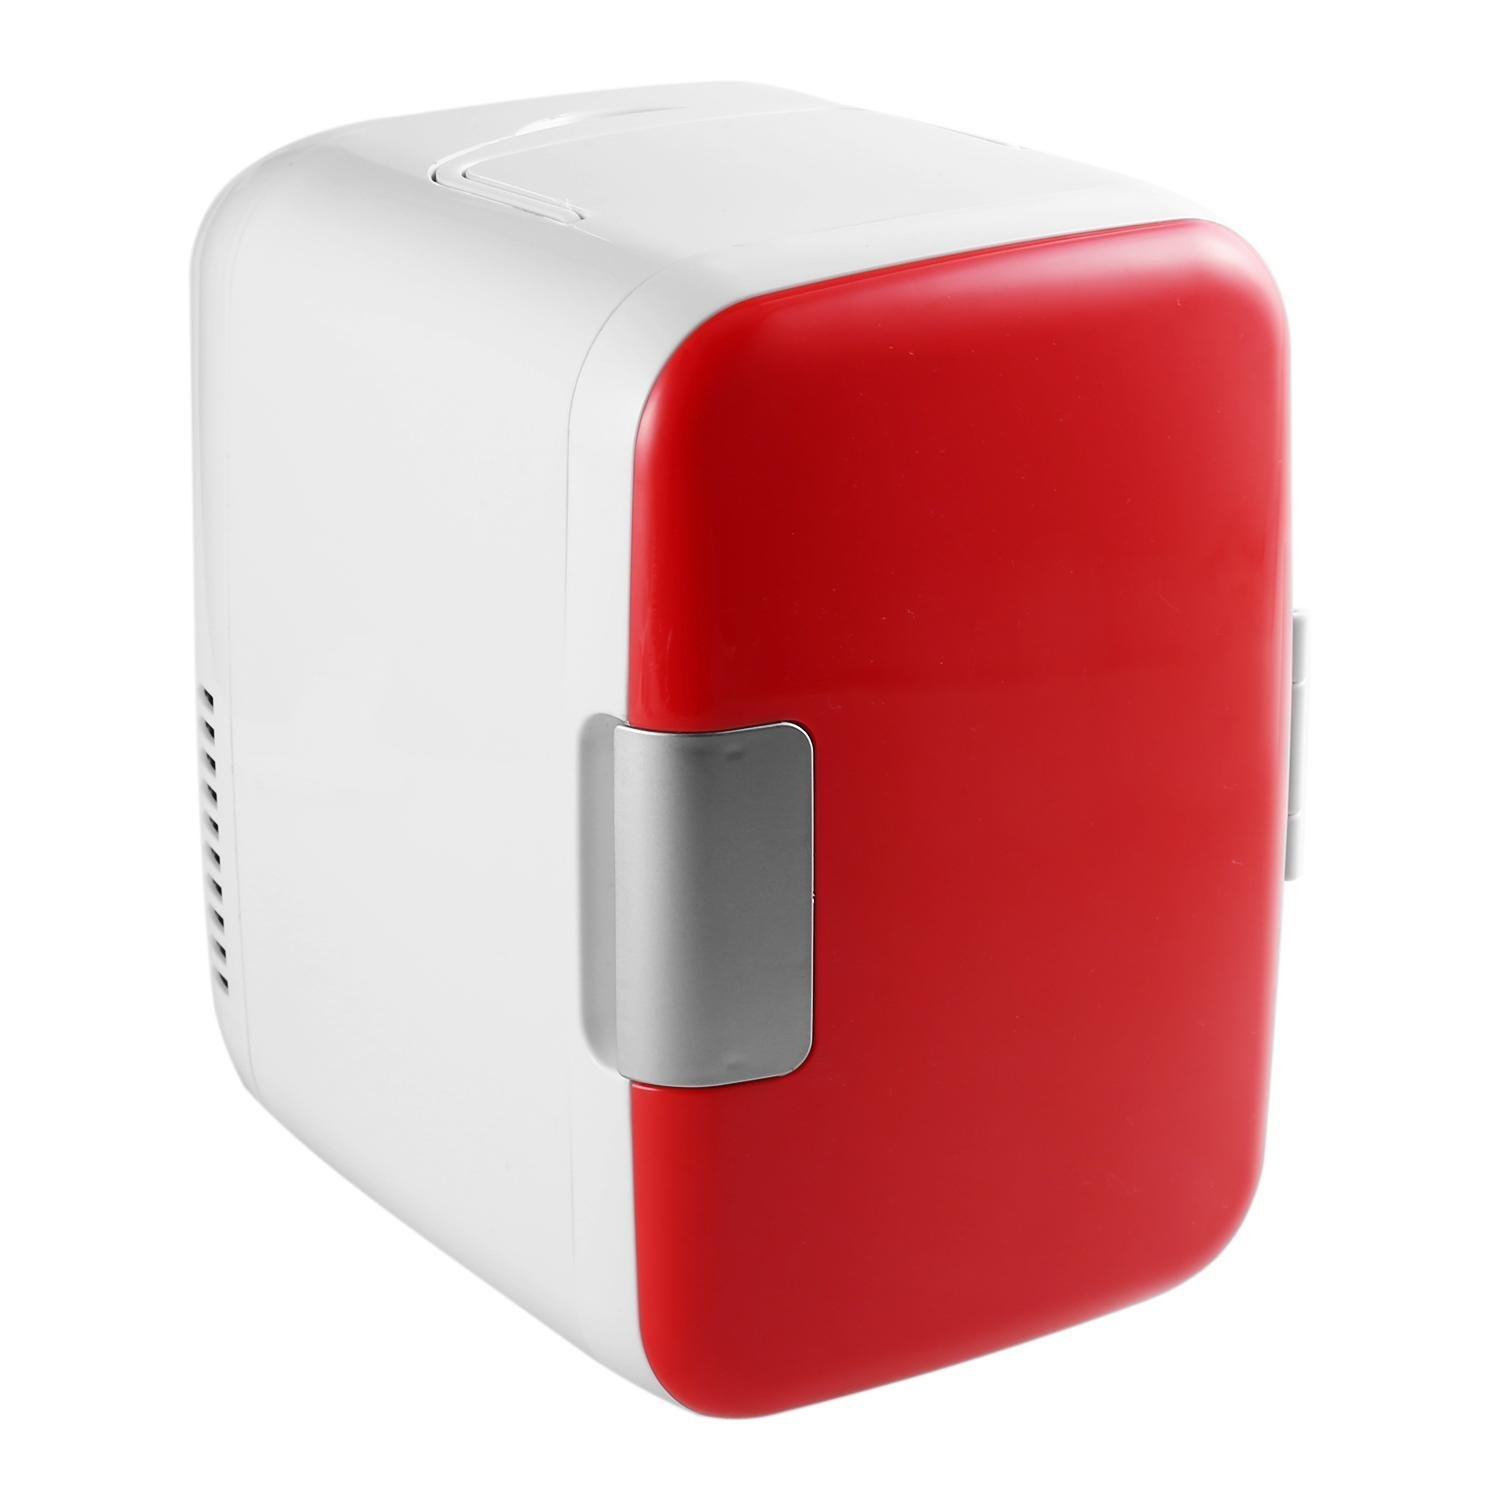 Portable Mini Fridge for Car Home Office 4 Liter 6 Can Cooler and Warmer AC & DC 110V (Red)